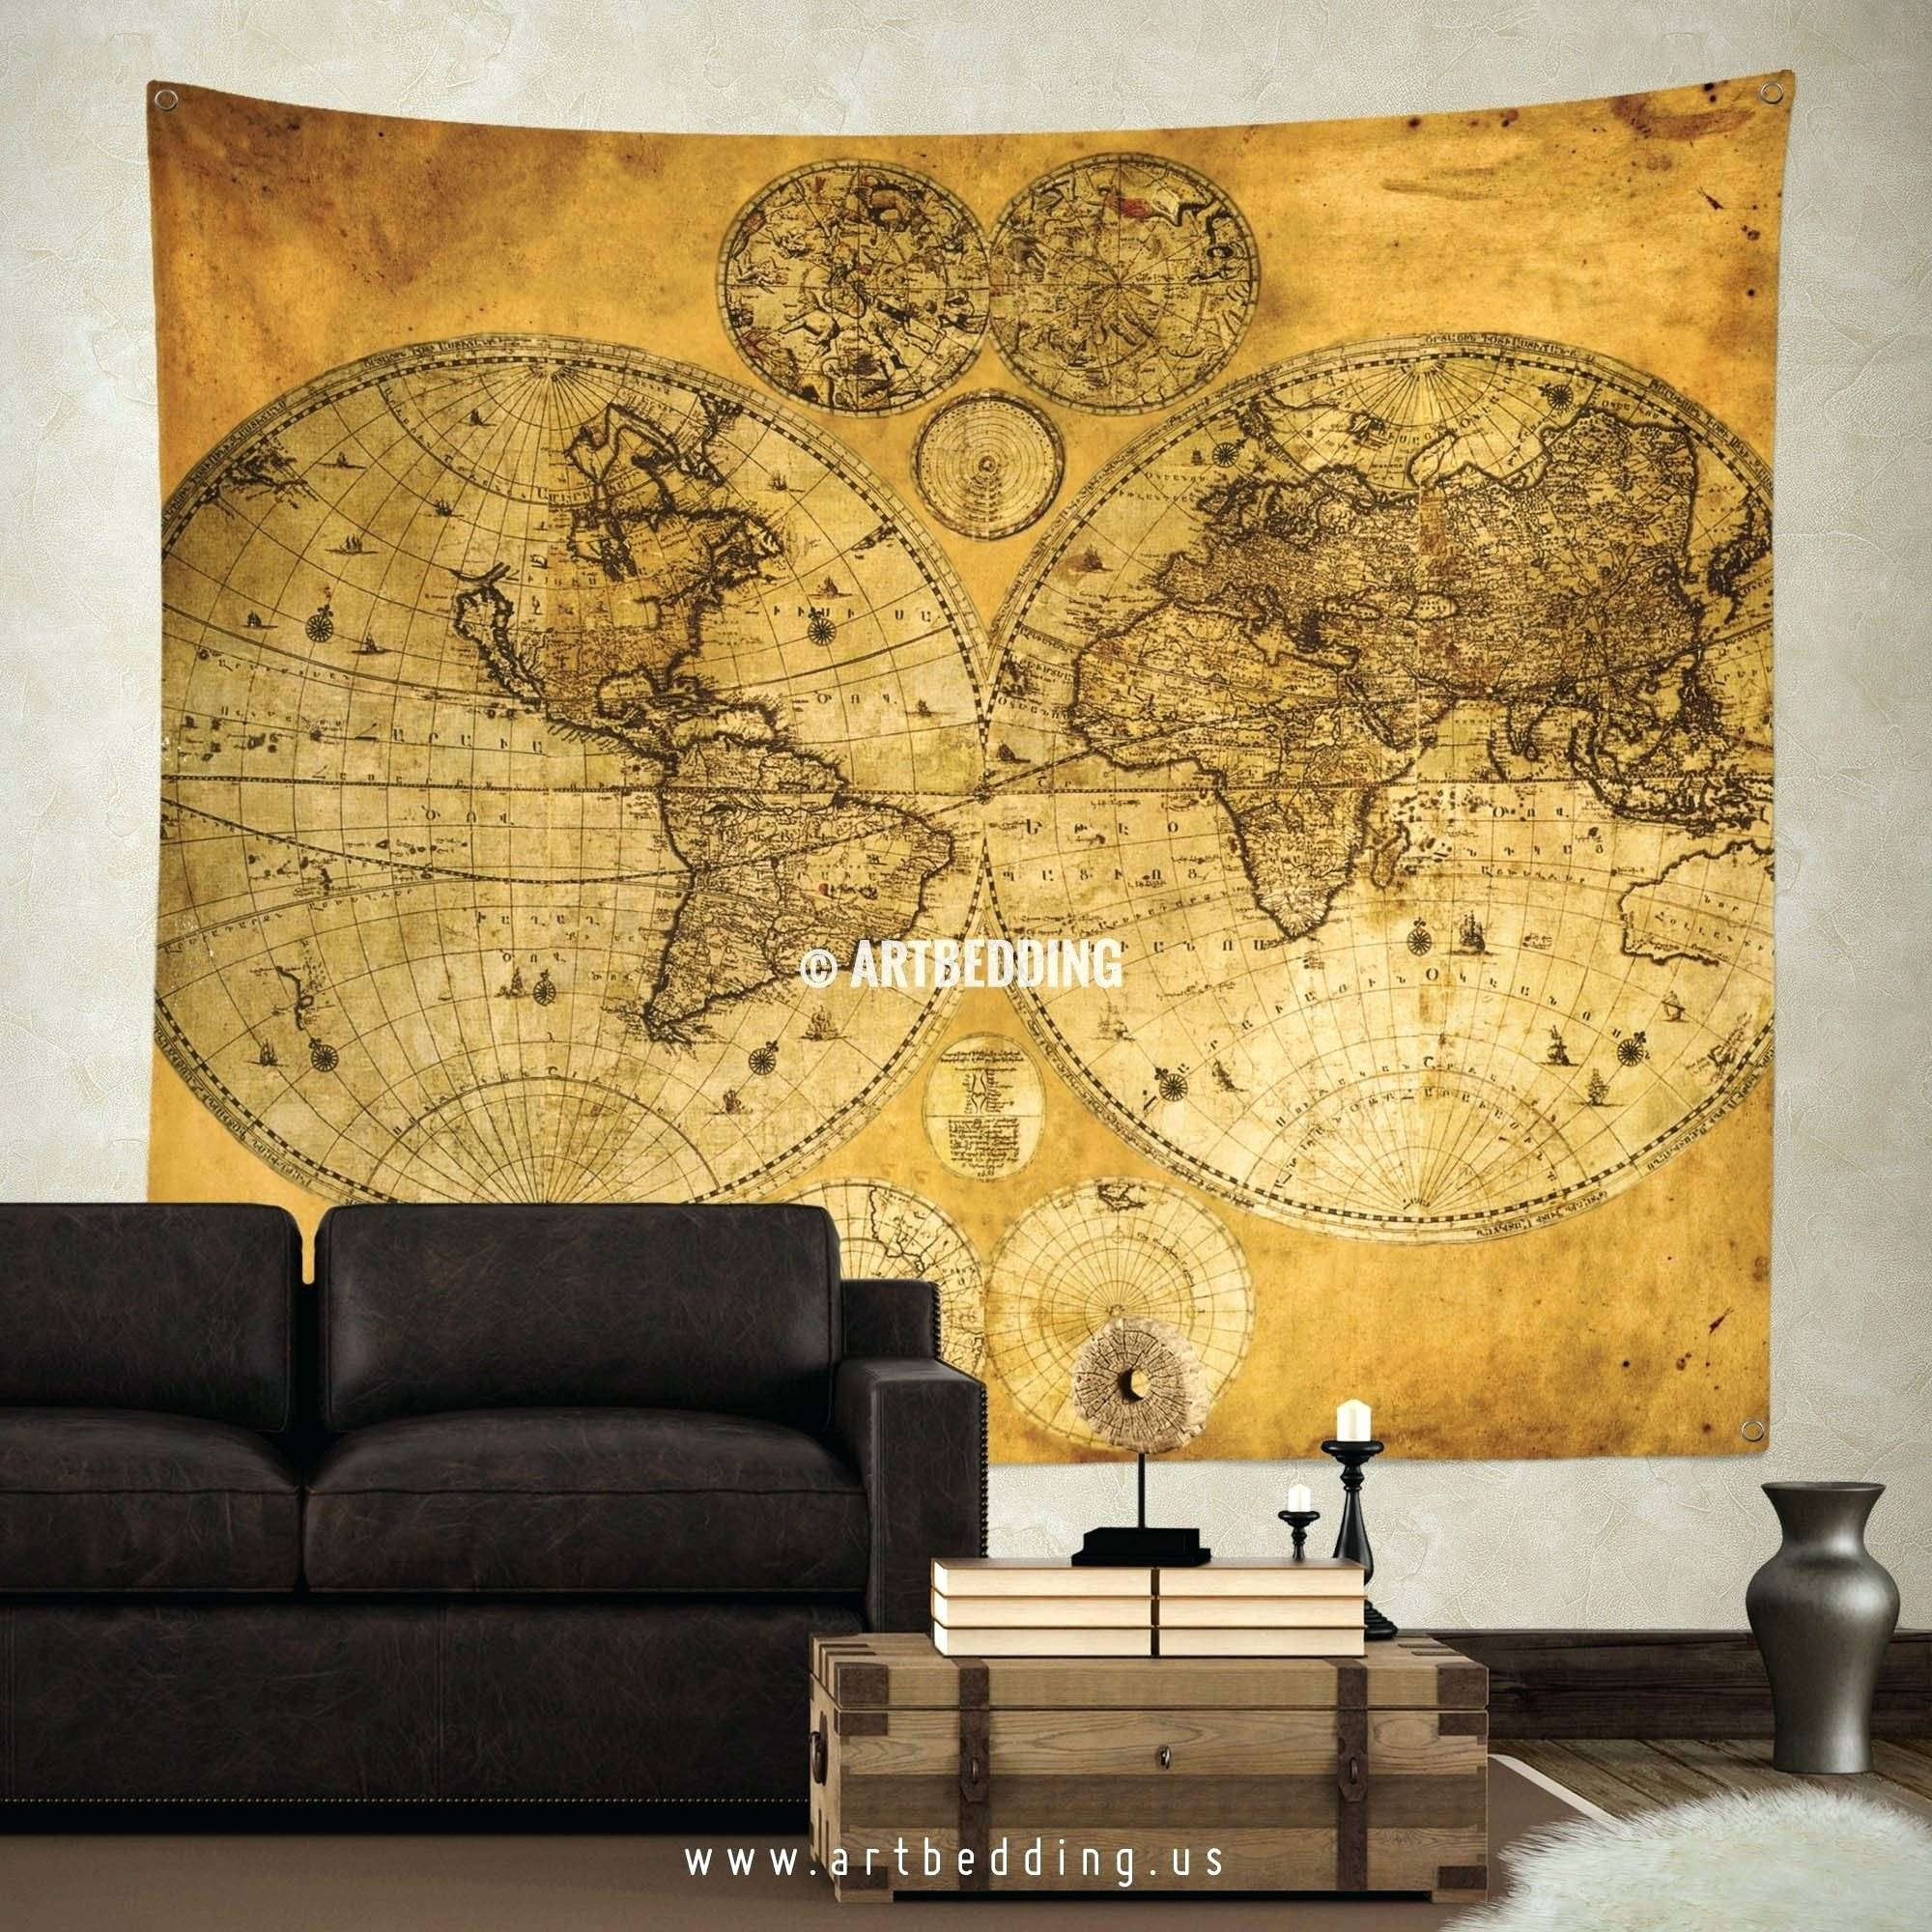 Wall Arts ~ Vintage London Map Wall Art Old World Map Art Canvas Intended For Most Popular World Map Wall Artwork (View 12 of 20)